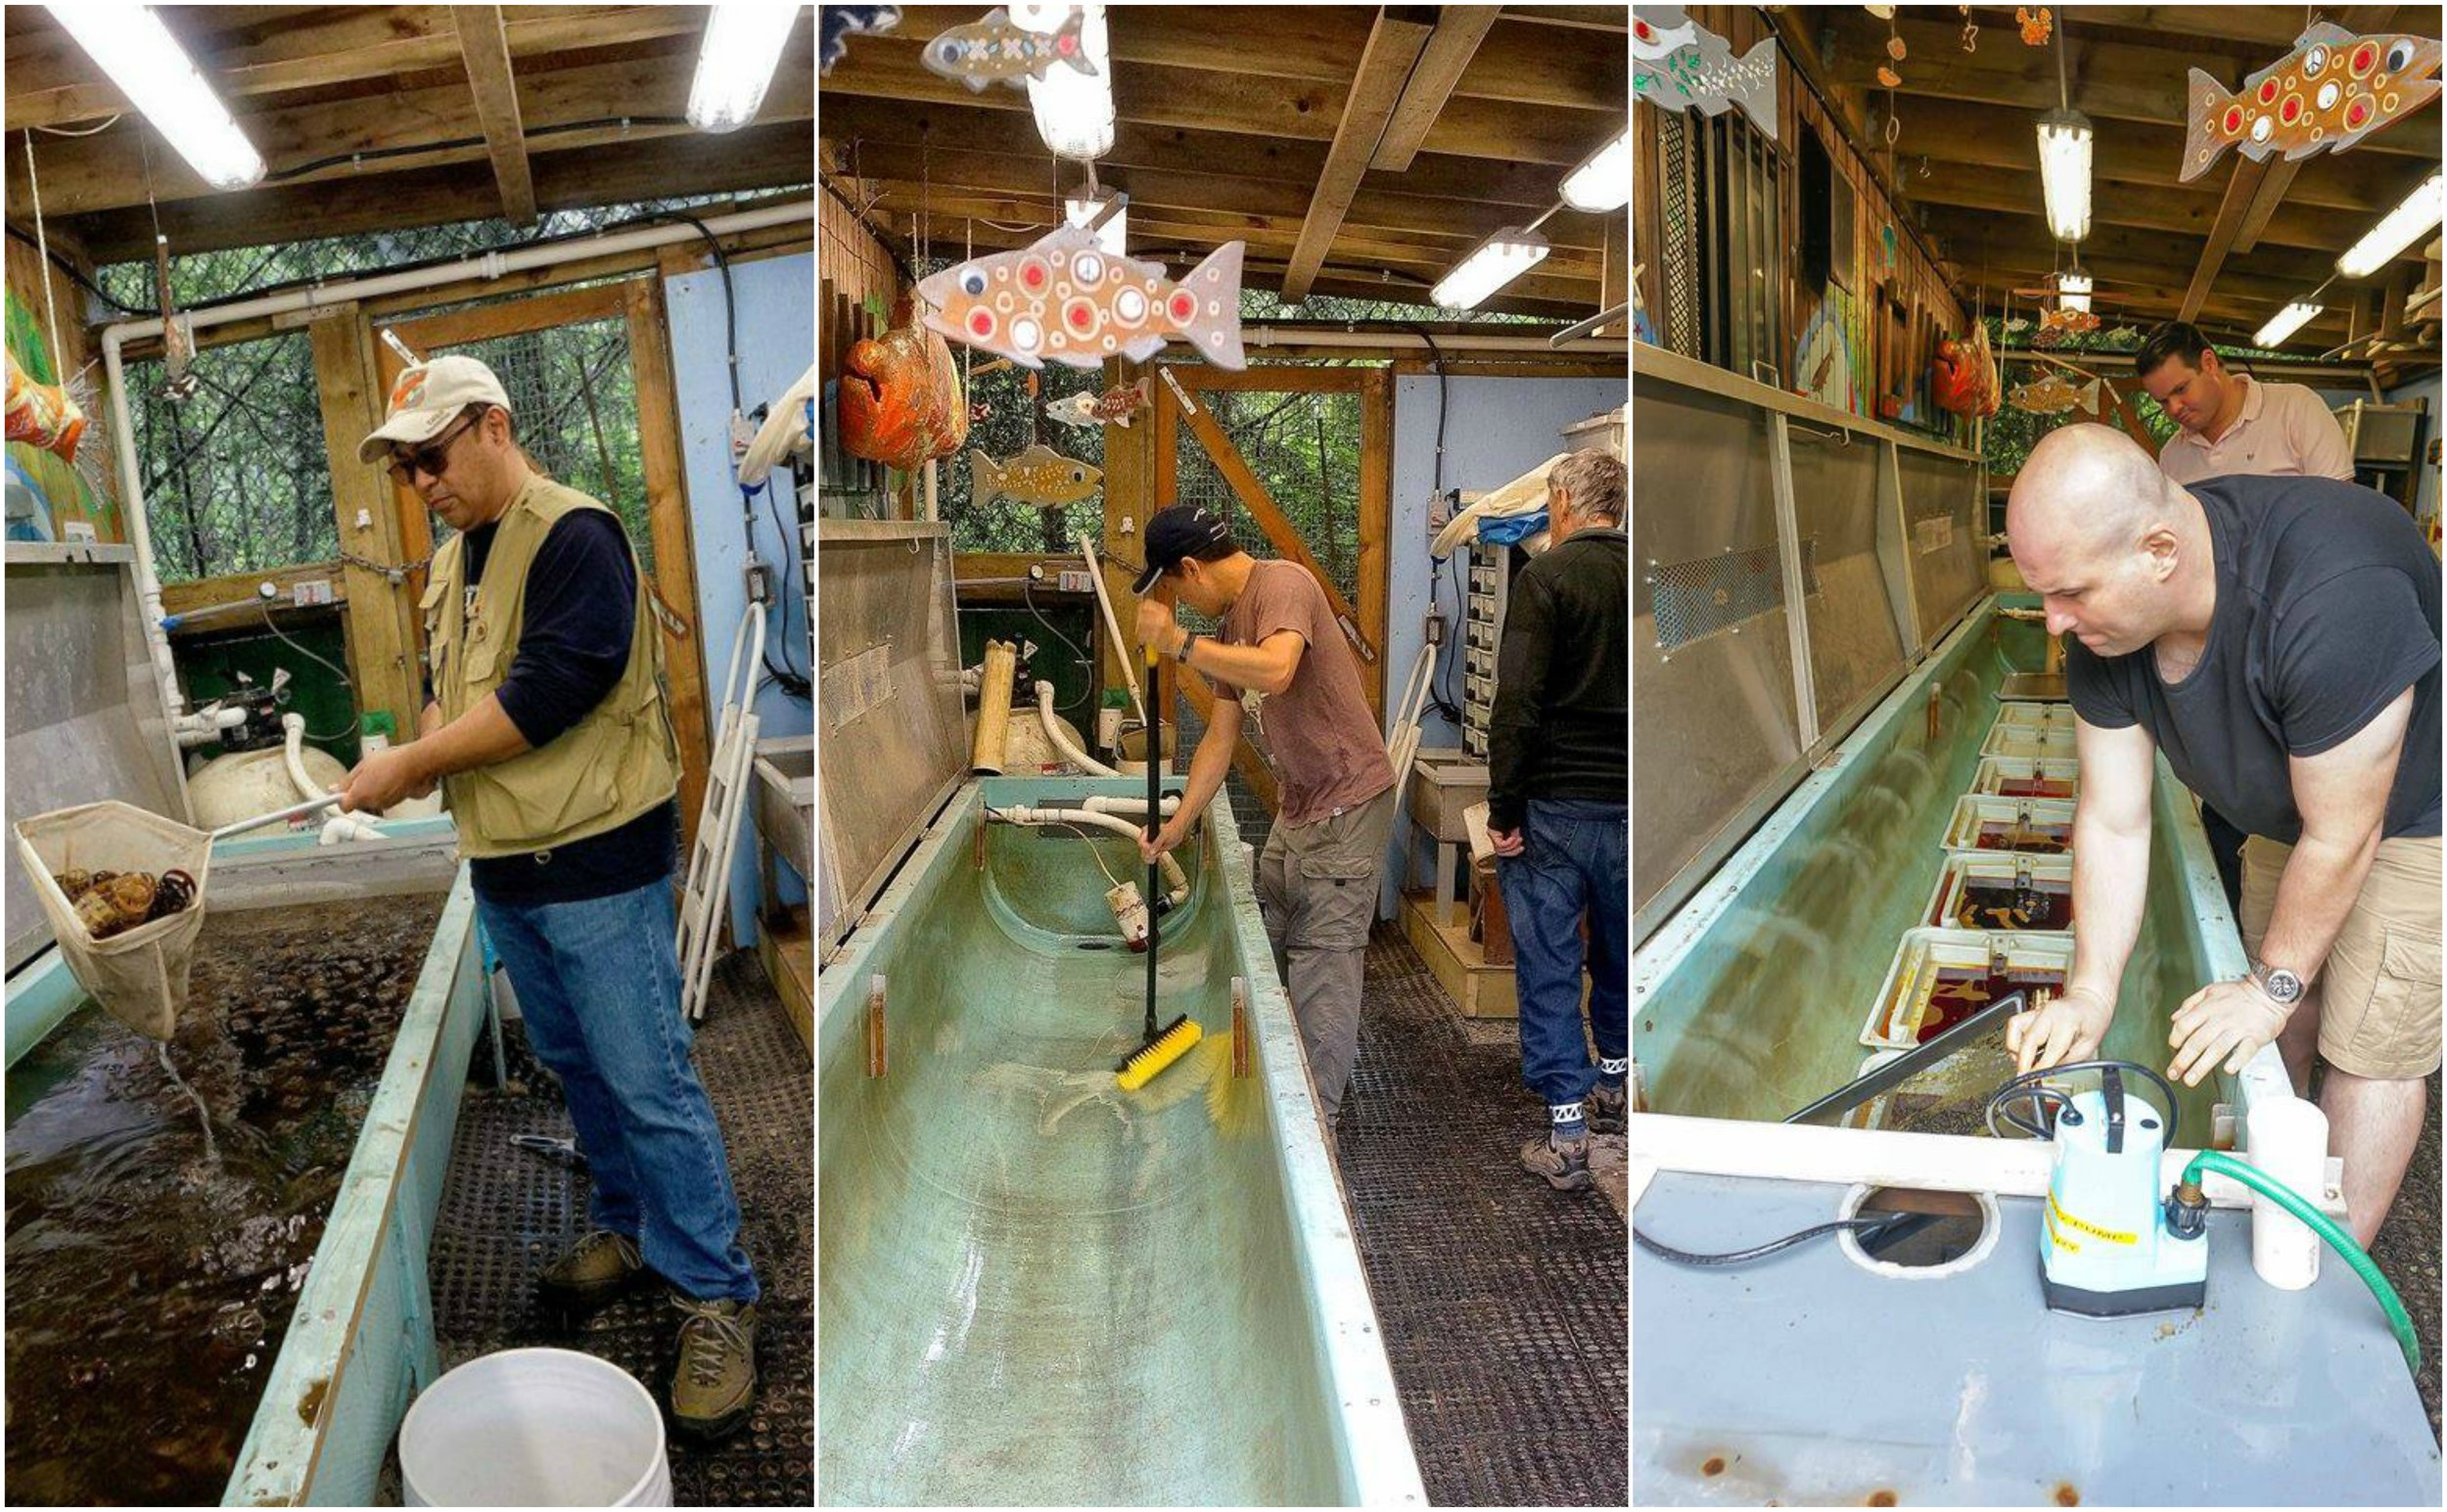 Volunteers clean and disinfect equipment in the Capilano trough room at the Hoy Creek Hatchery